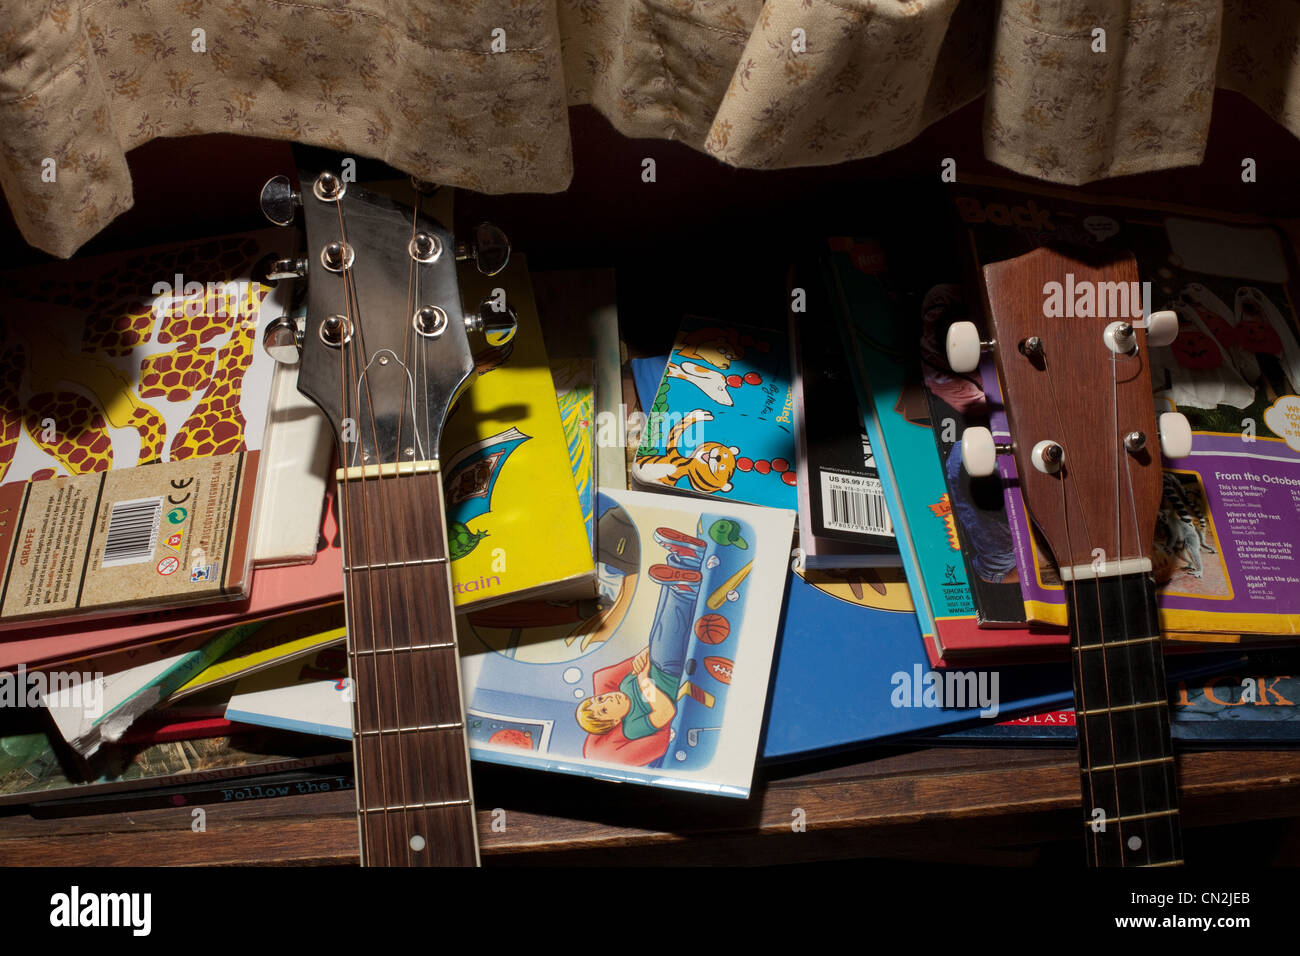 Guitars and children's books - Stock Image